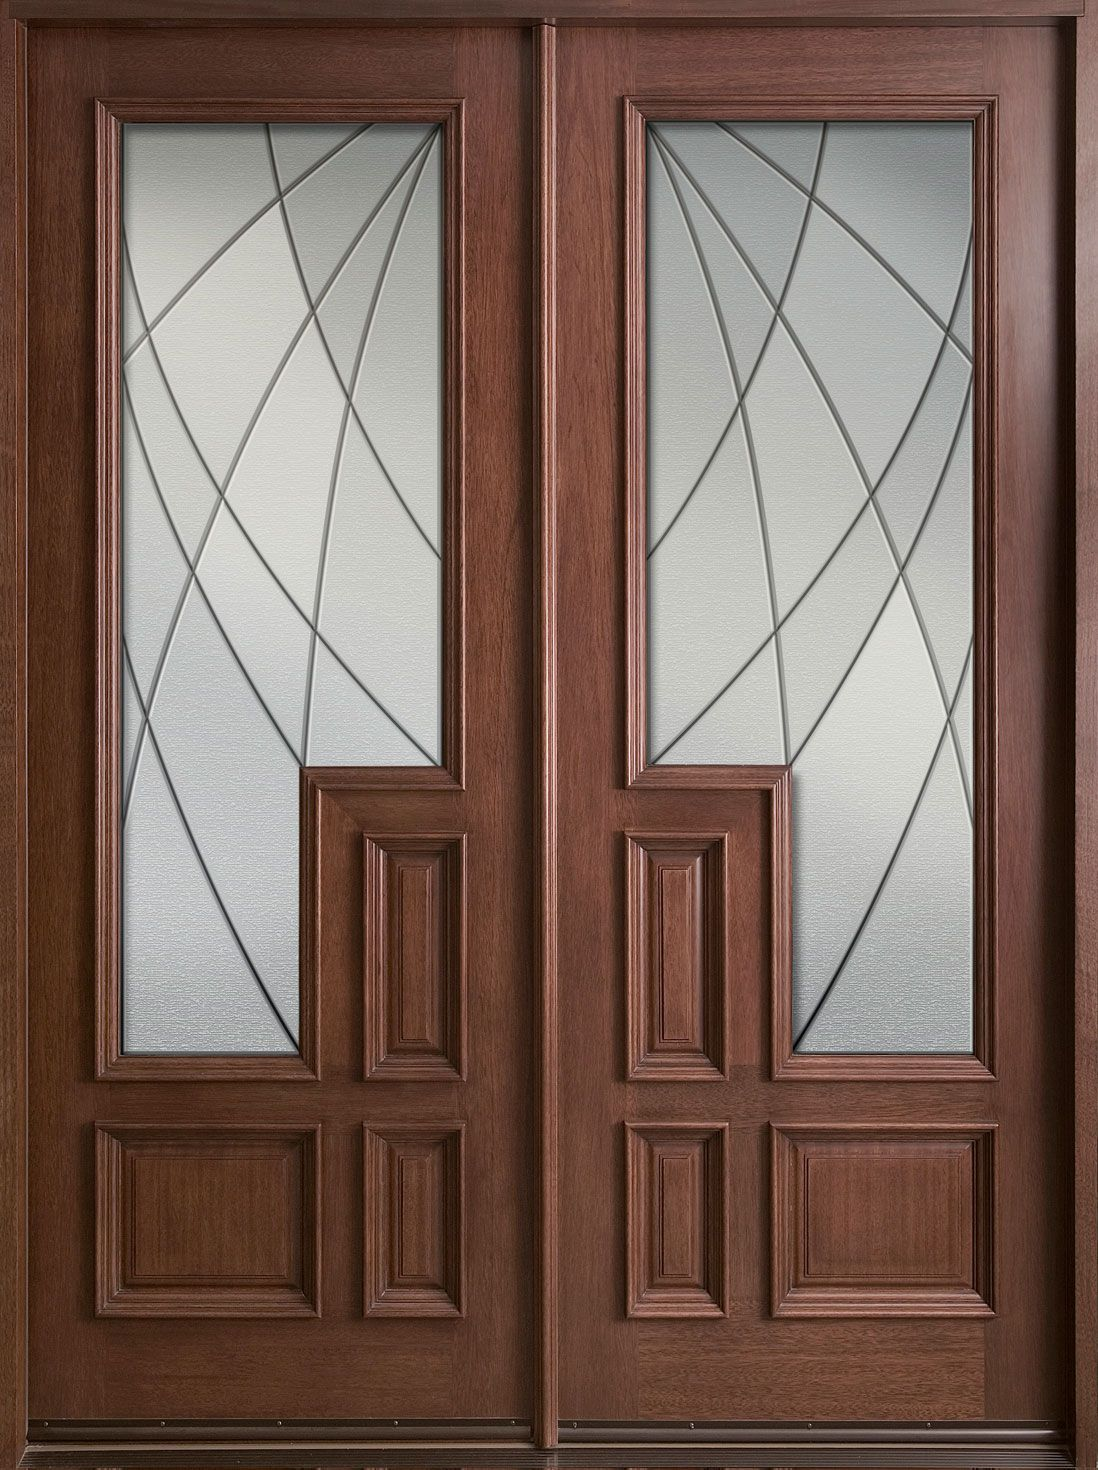 Inspiring double fiberglass entry door as furniture for for Double wood doors with glass